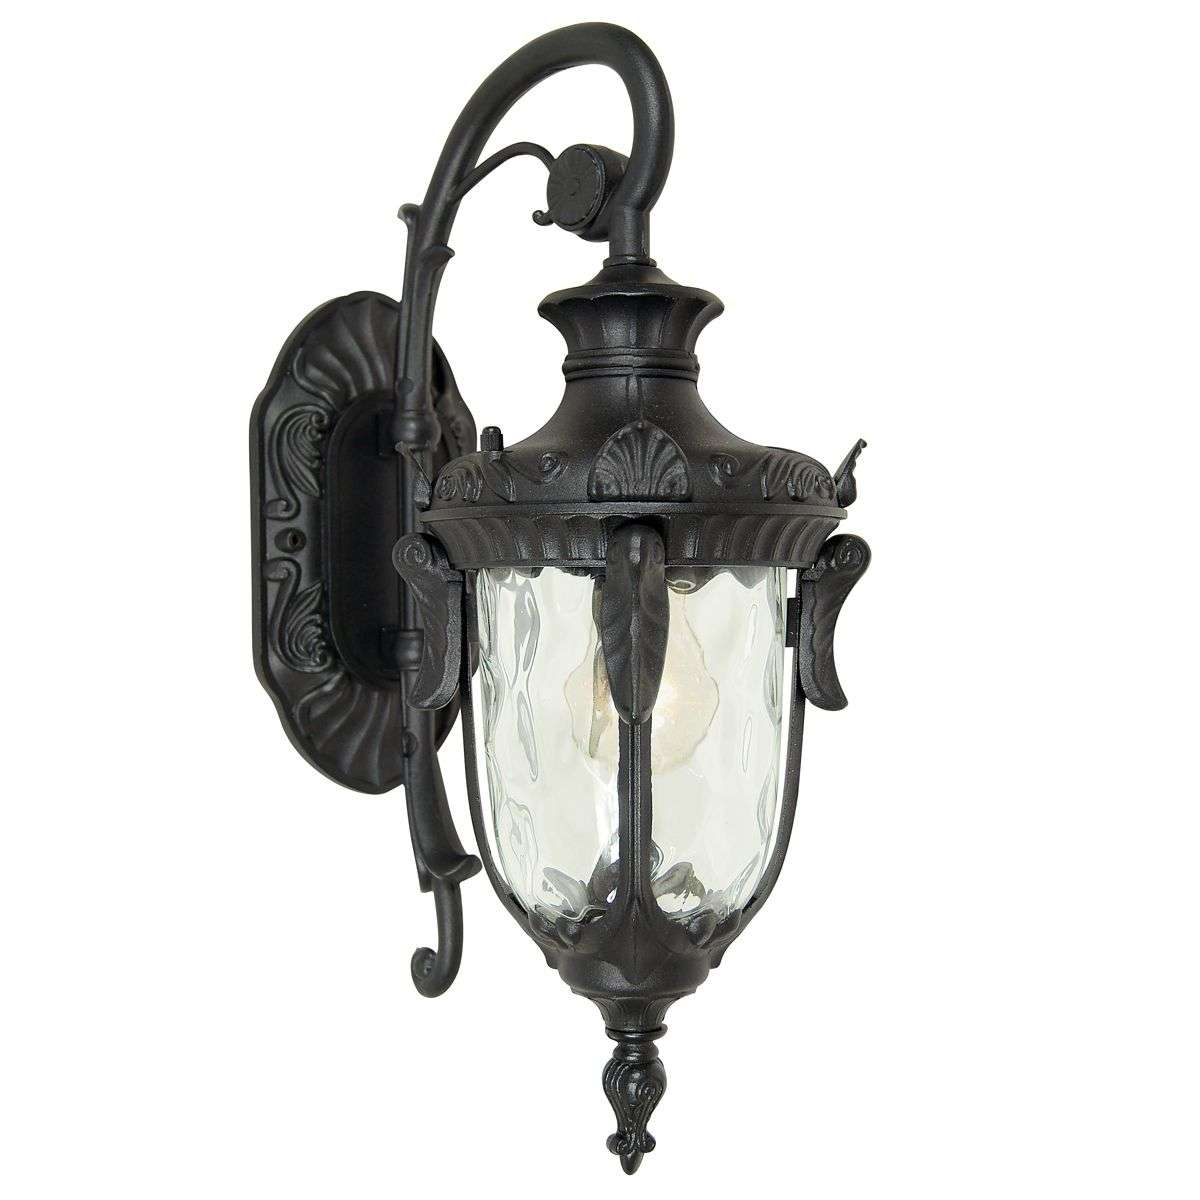 Antique outdoor wall lamp philadelphia black lights antique outdoor wall lamp philadelphia black 3048387 31 aloadofball Choice Image